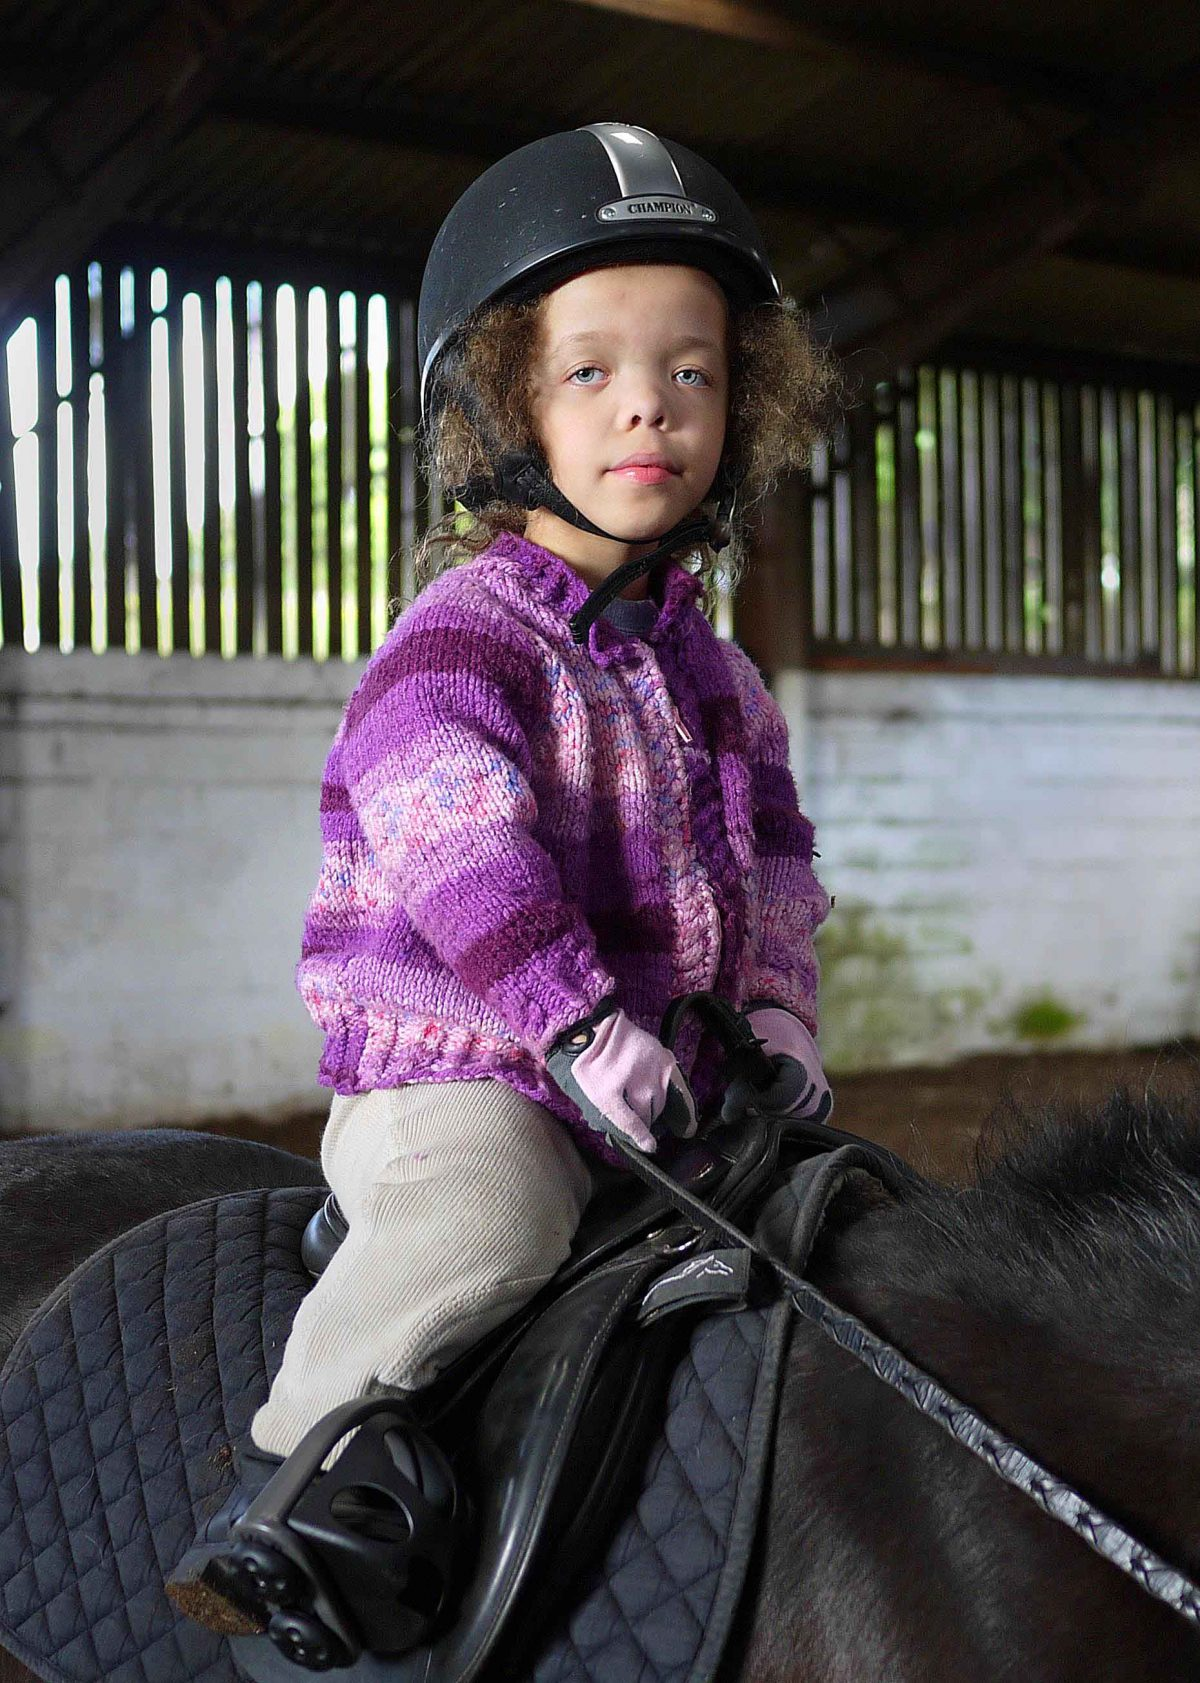 Savannah is a natural and confident rider